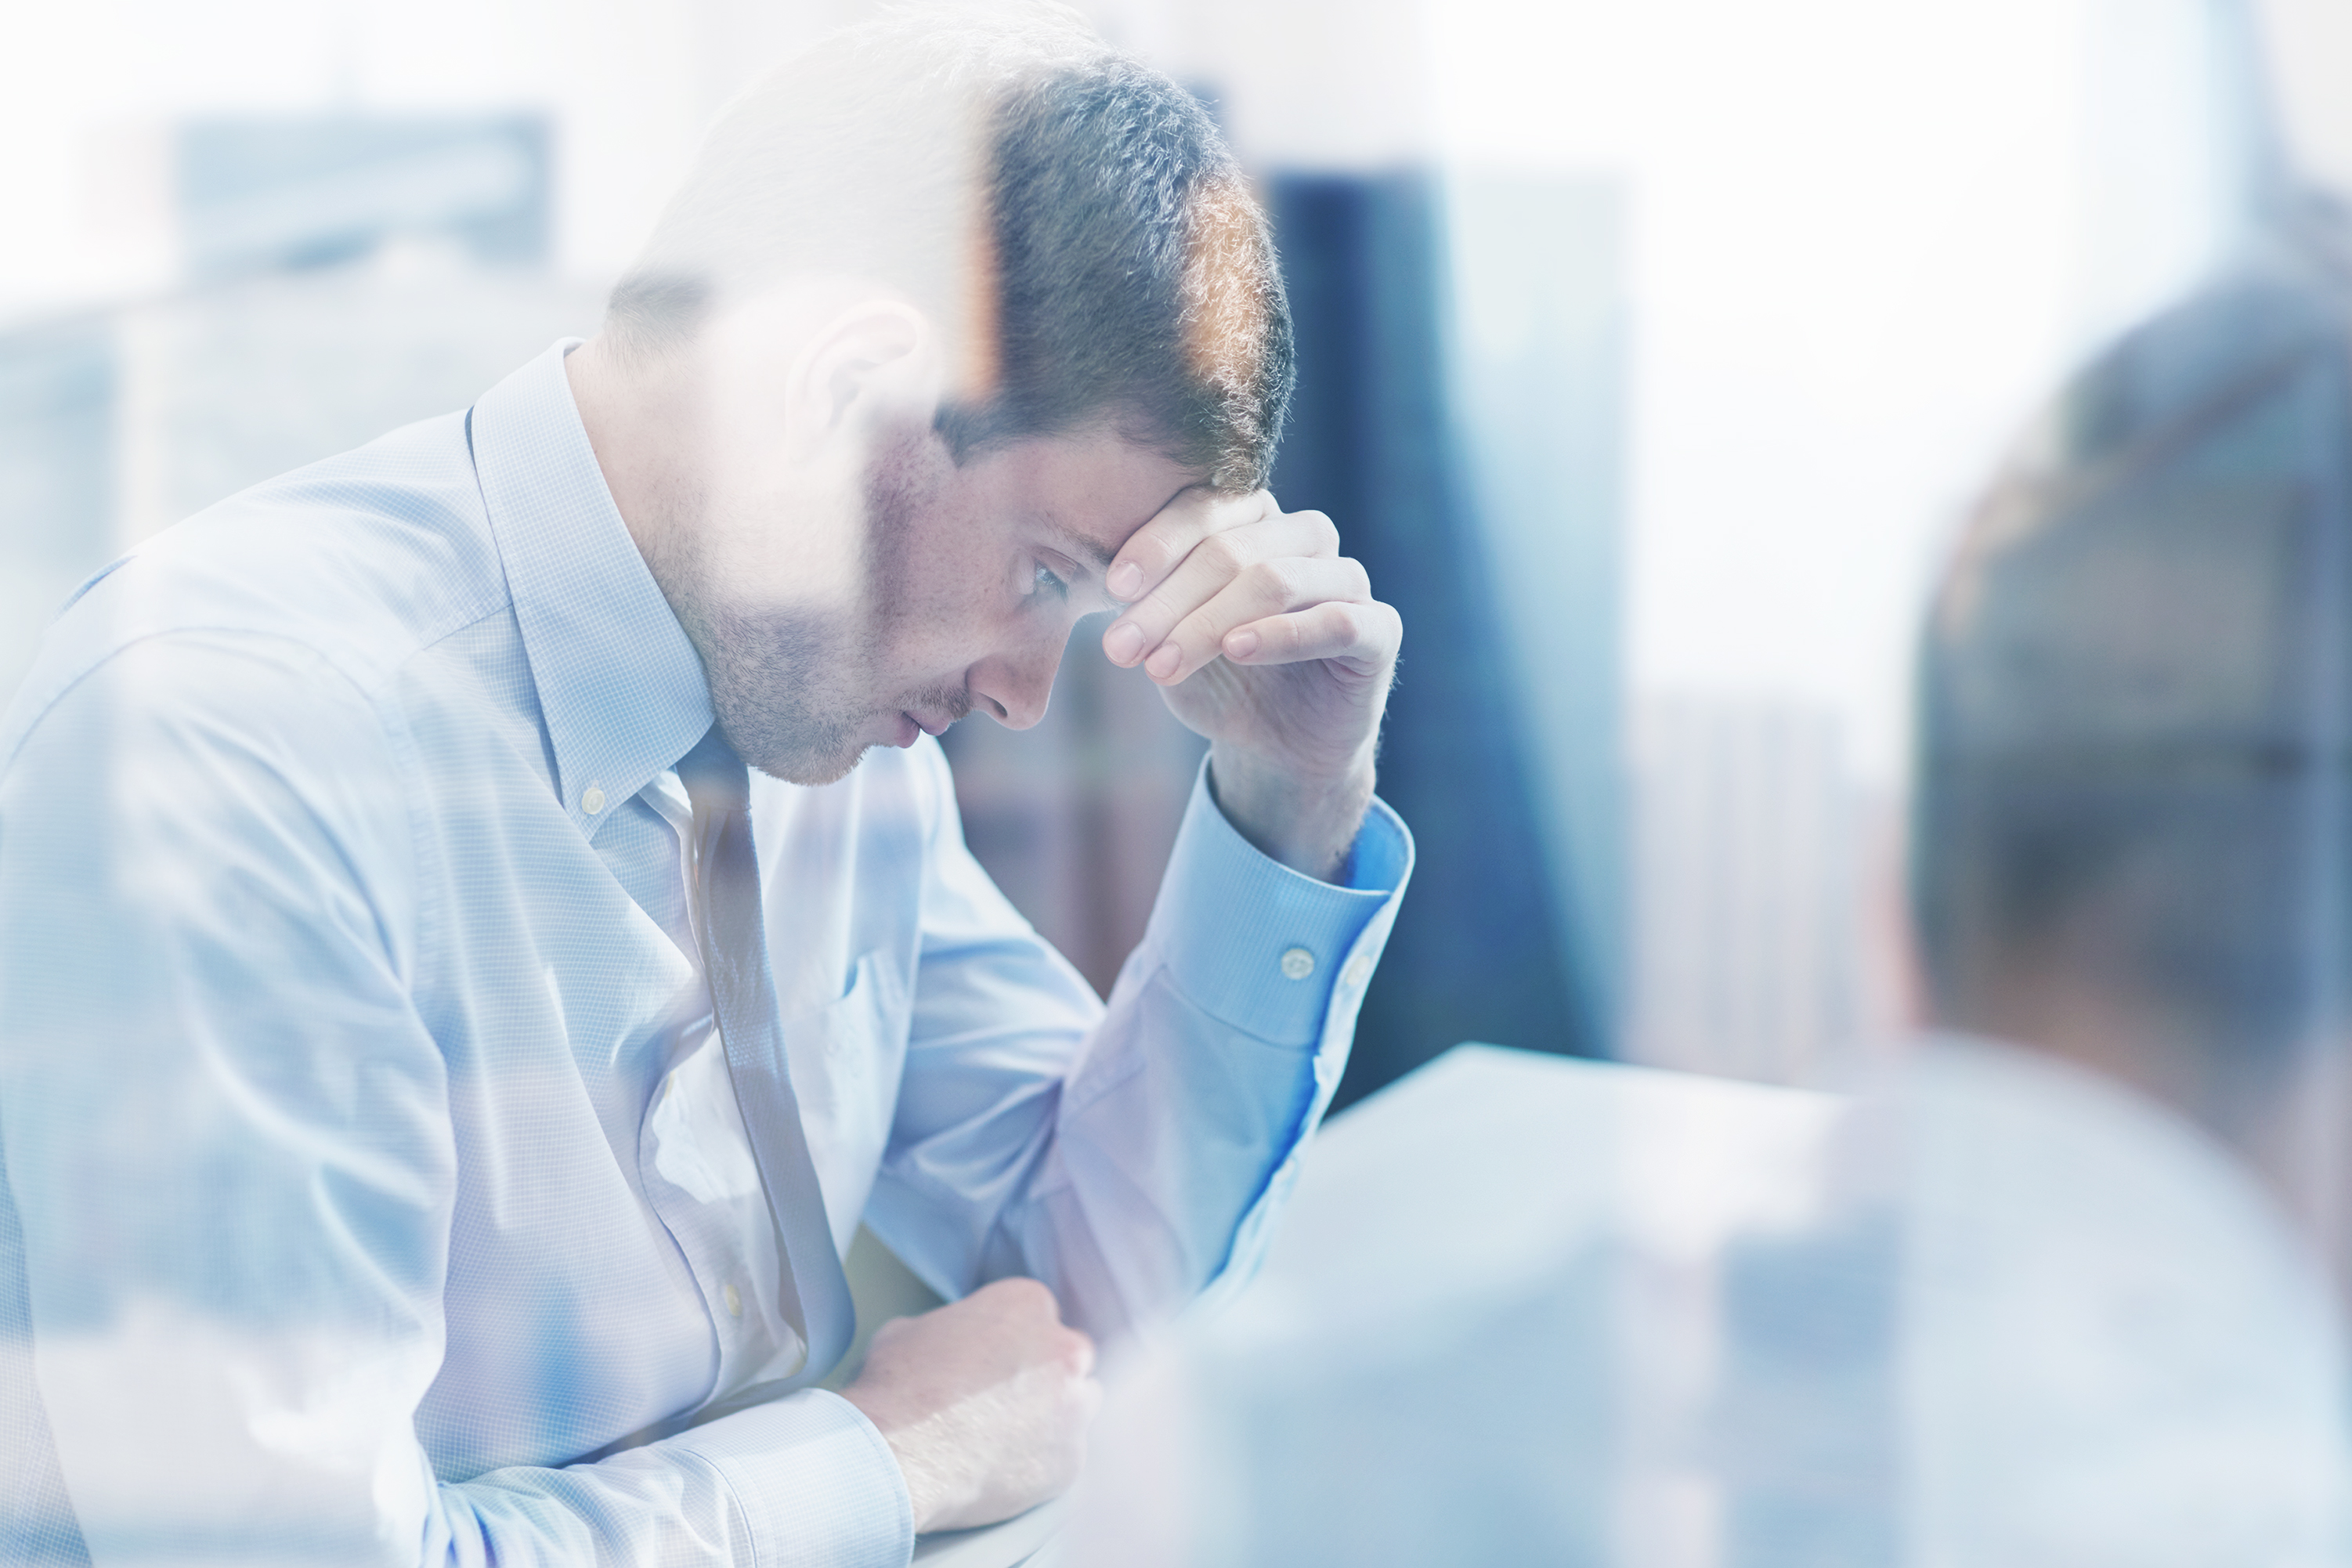 15602969-business-people-having-problem-in-office